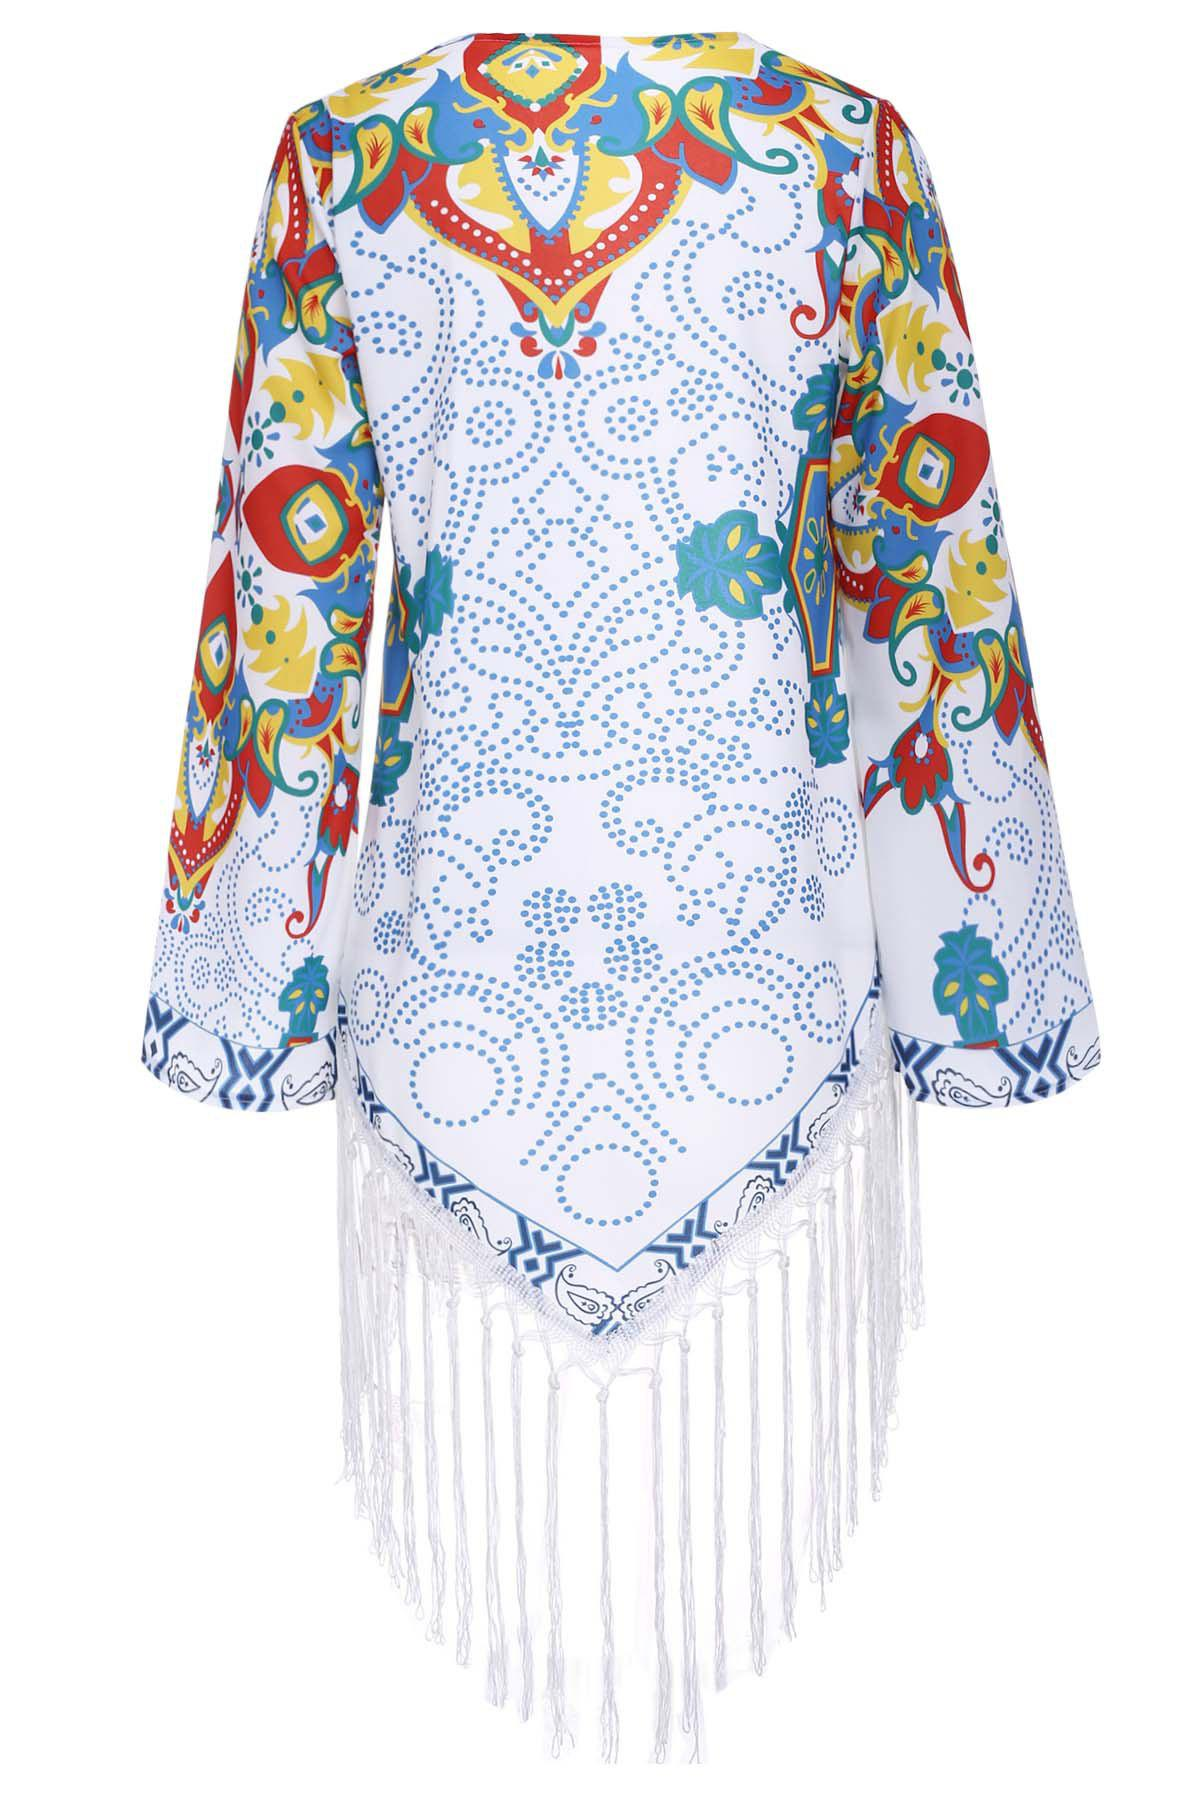 Vintage Collarless 3/4 Sleeve Fringe Design Floral Print Women's Kimono - COLORMIX M